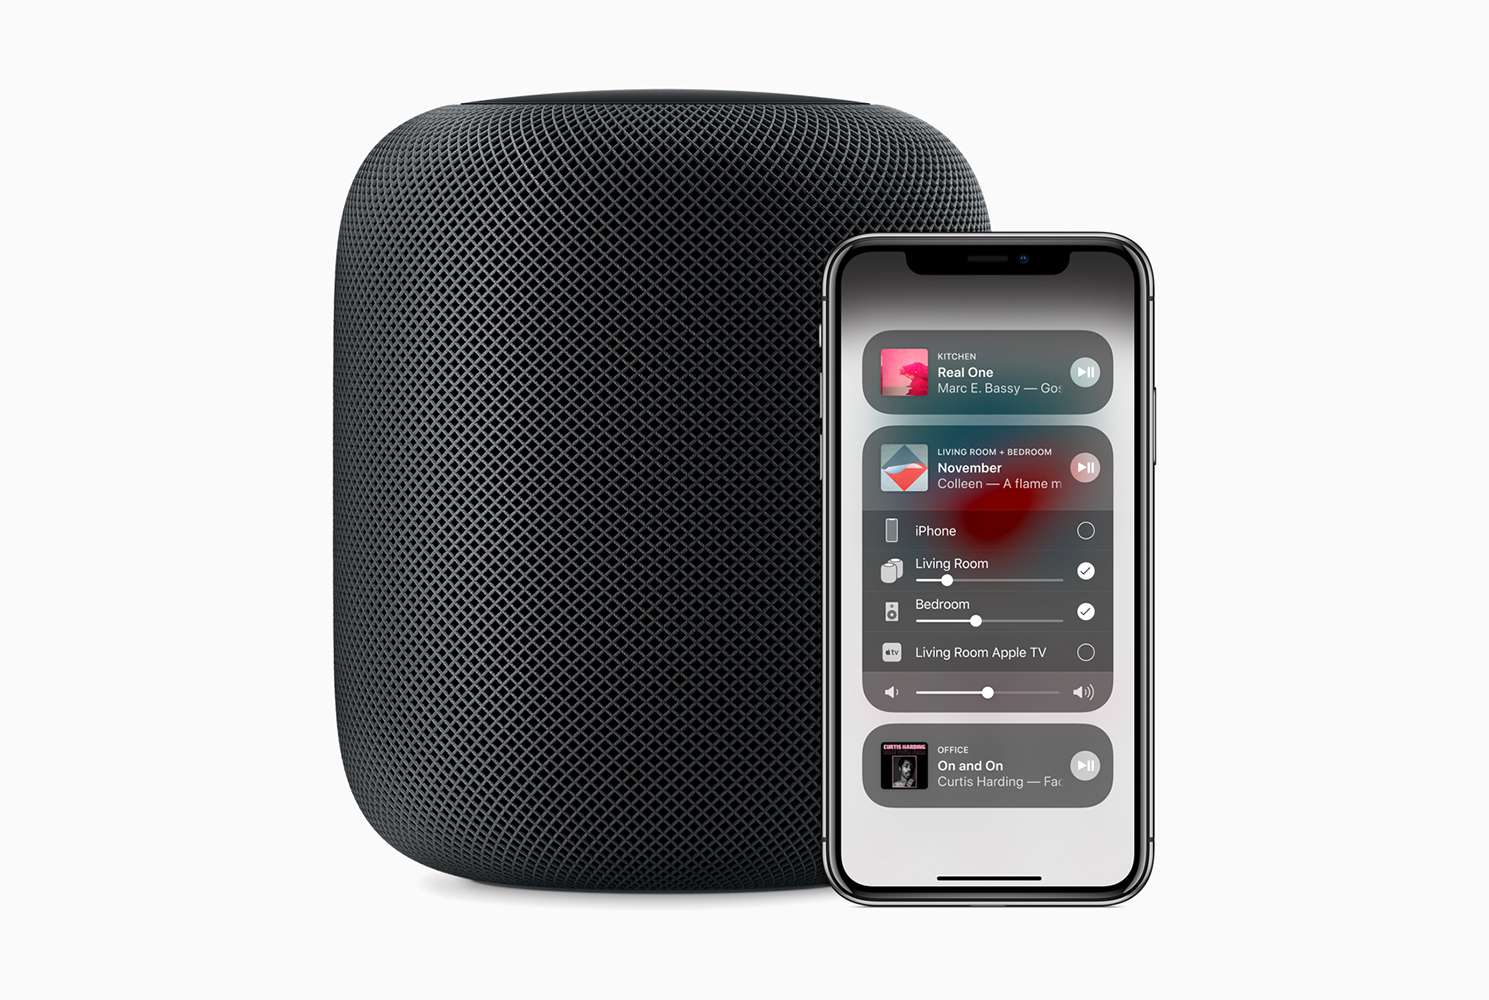 homepod and airplay